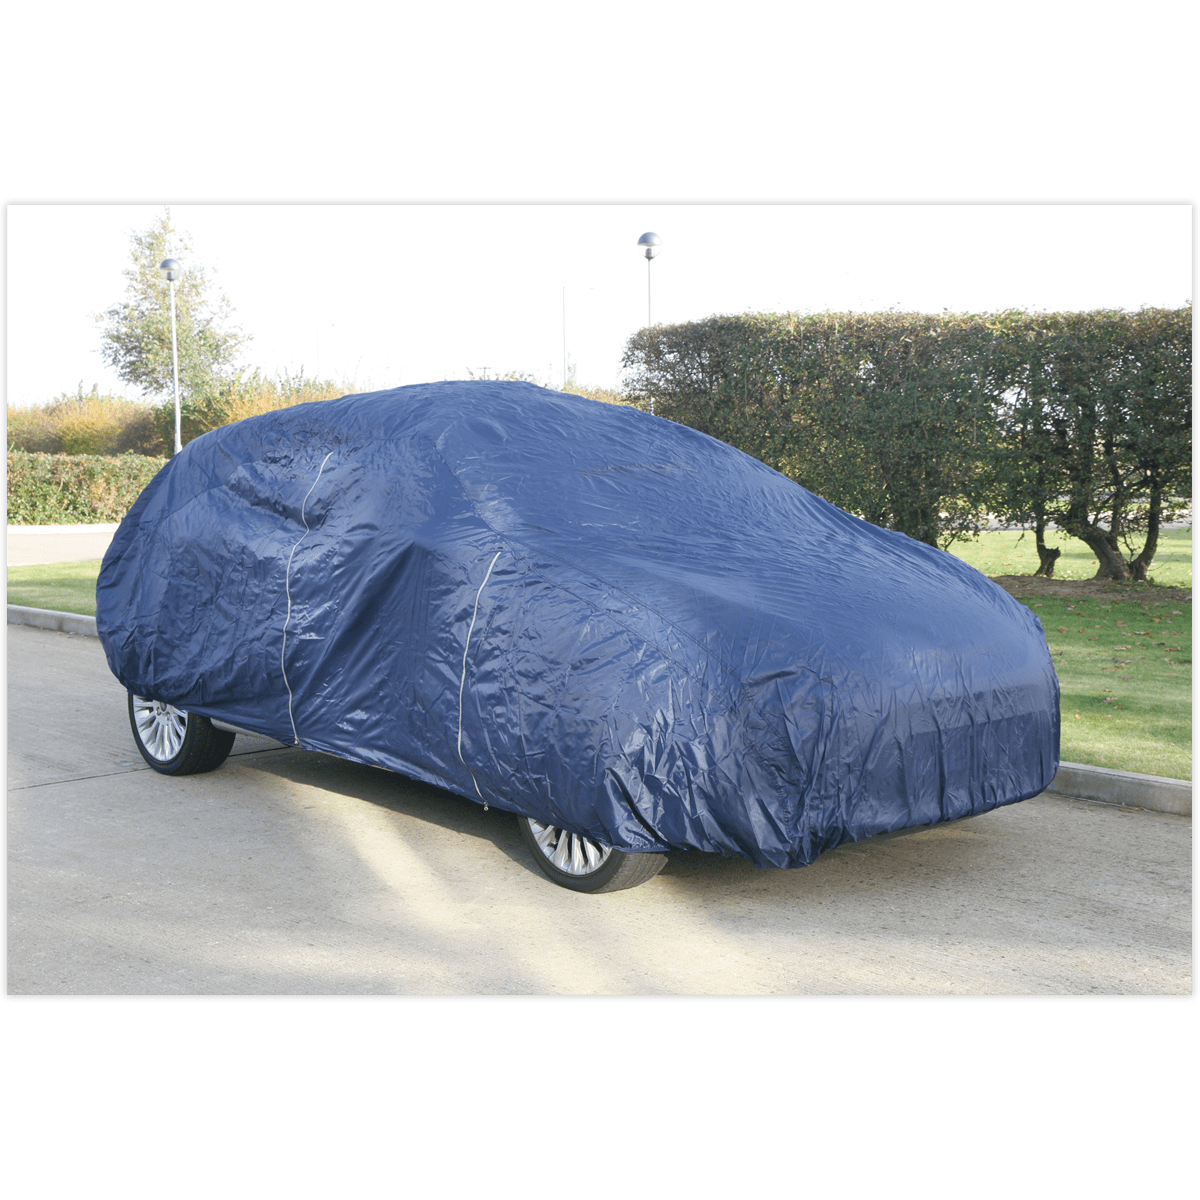 Vehicle Protection